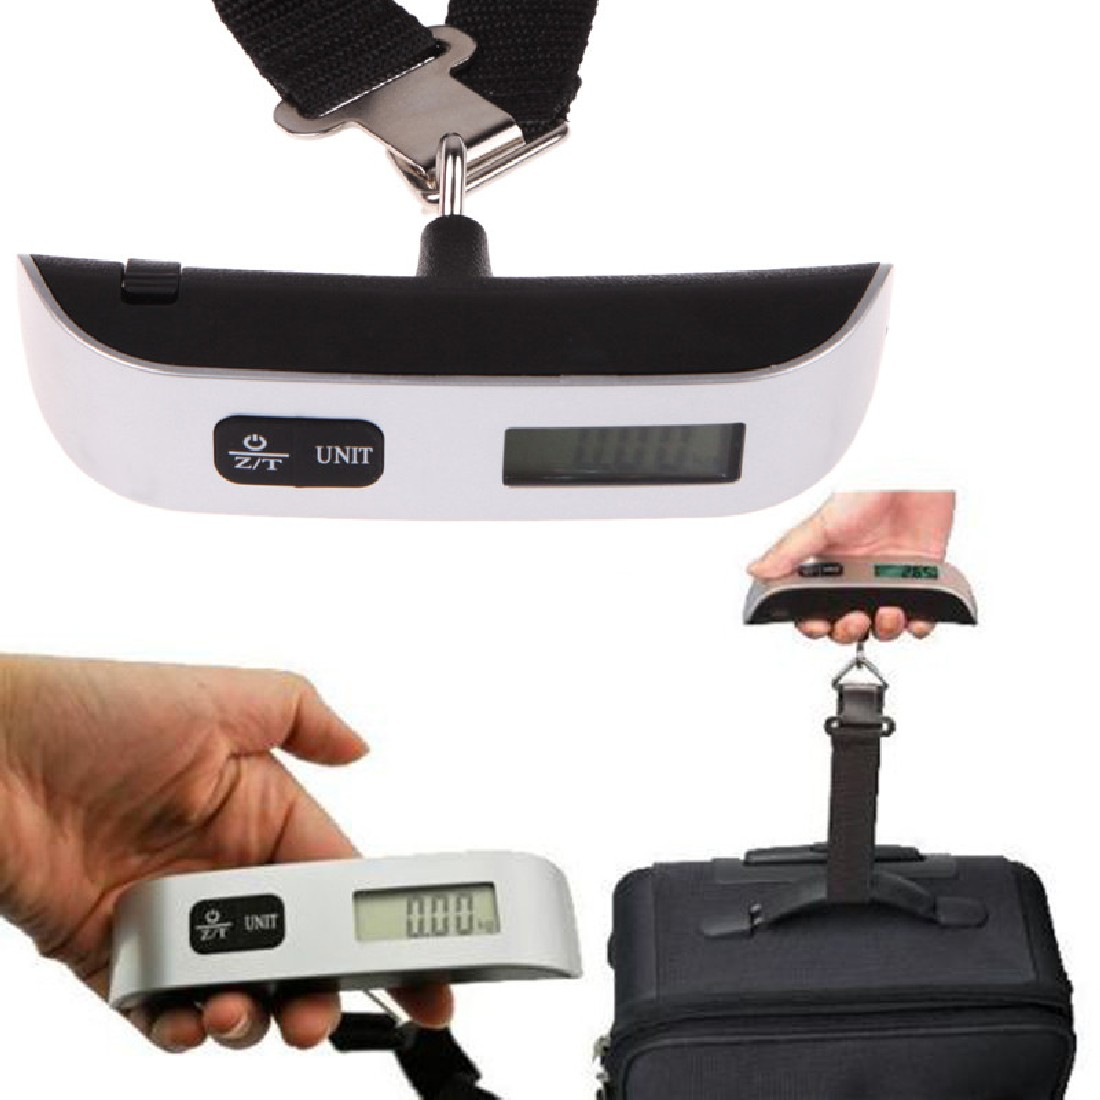 110 lb/50 kg Portable Hand Held Hook Belt Electronic Scale Digital Travel Suitcase Luggage Hanging Scales Weighing Balance110 lb/50 kg Portable Hand Held Hook Belt Electronic Scale Digital Travel Suitcase Luggage Hanging Scales Weighing Balance